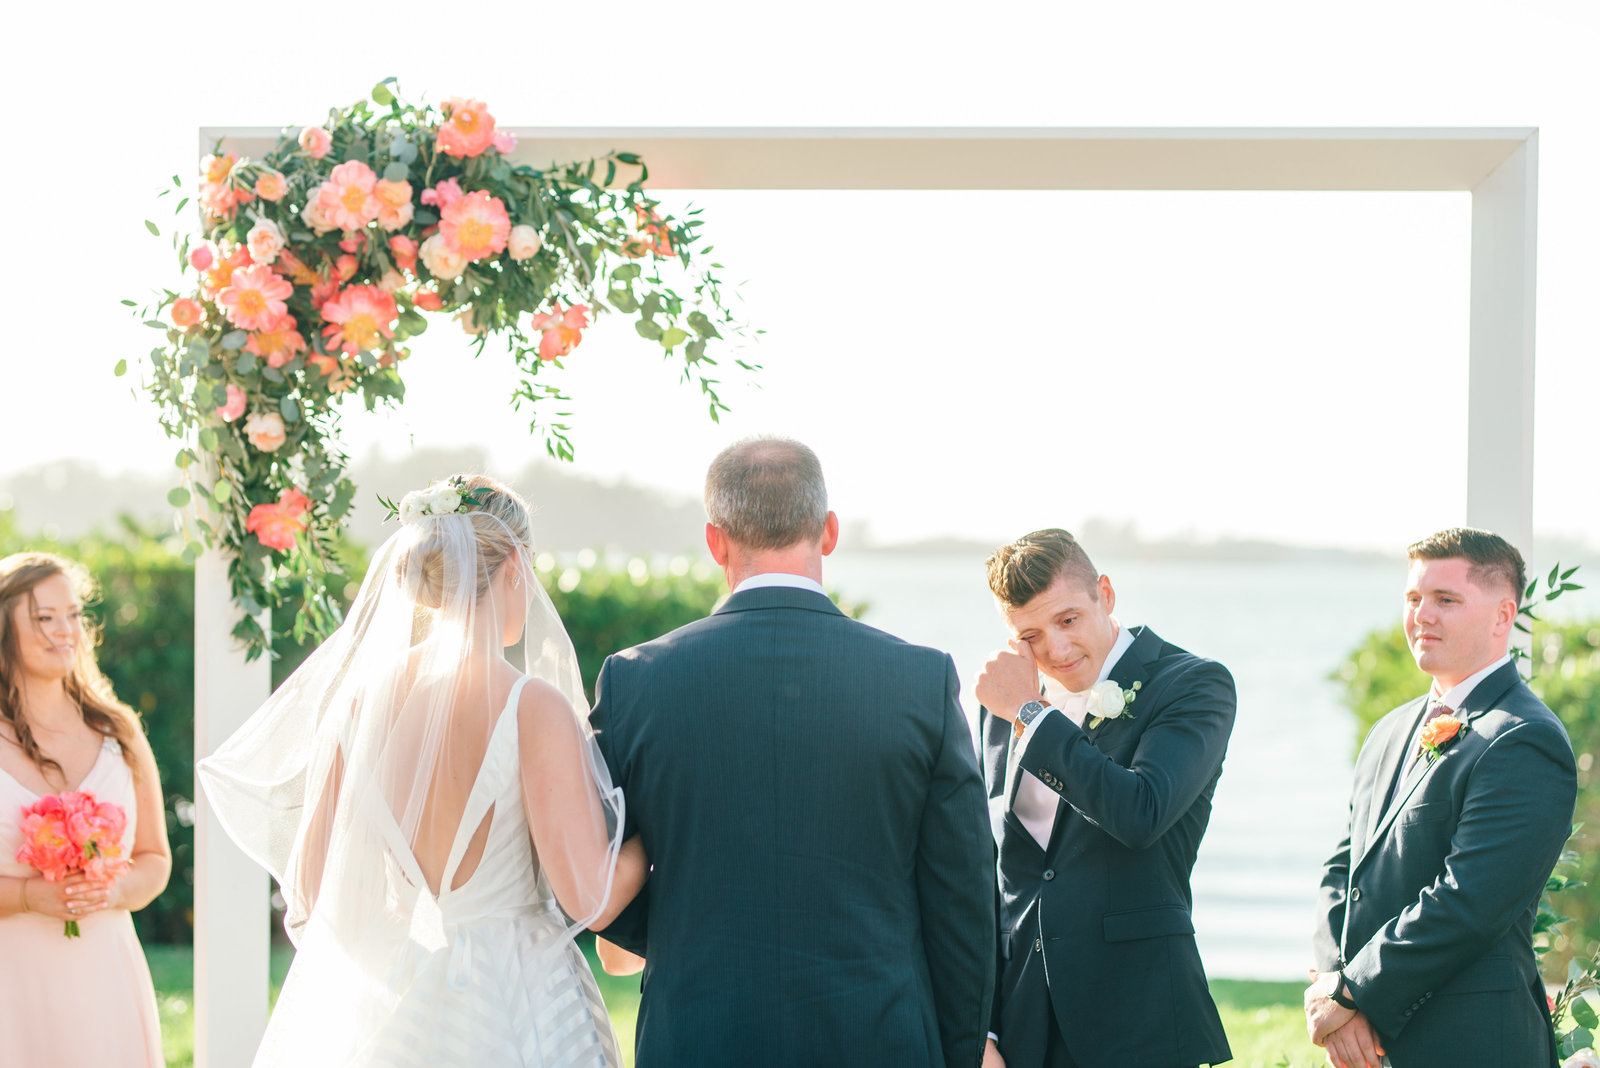 Kayla & Sean Field Club Wedding in Sarasota by Ledia Tashi Photography